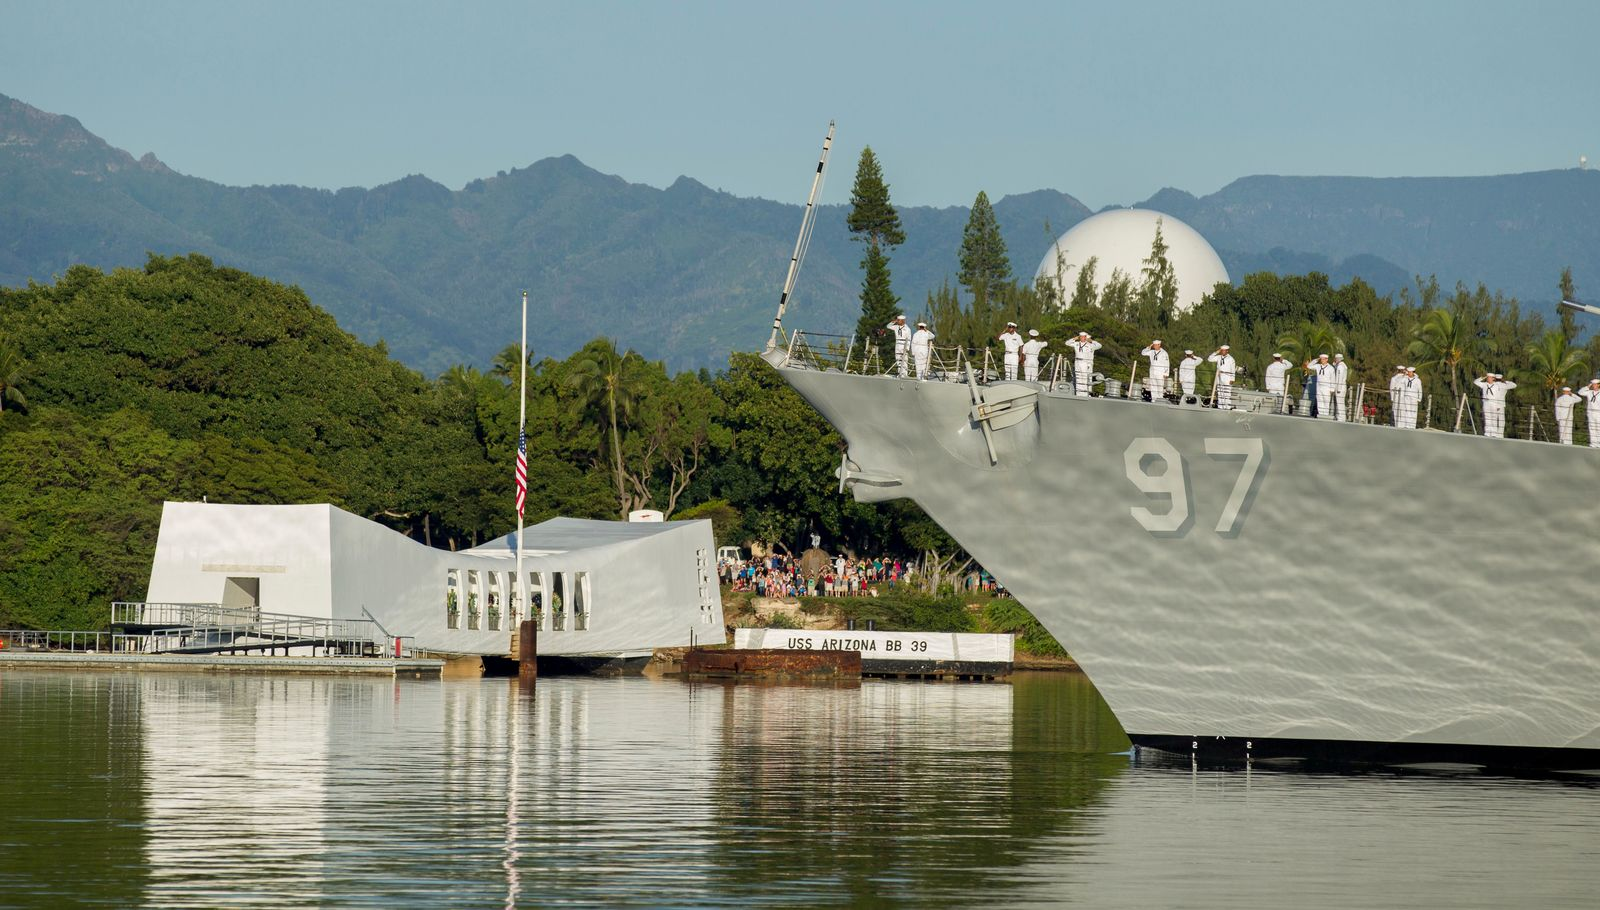 FILE - In this Dec. 7, 2016, file photo, sailors on the USS Halsey salute while passing by the USS Arizona Memorial during a moment of silence at Pearl Harbor, Hawaii. Survivors and members of the public are expected to gather in Pearl Harbor on Saturday, Dec. 7, 2019, to remember those killed when Japanese planes bombed the Hawaii naval base 78 years ago and launched